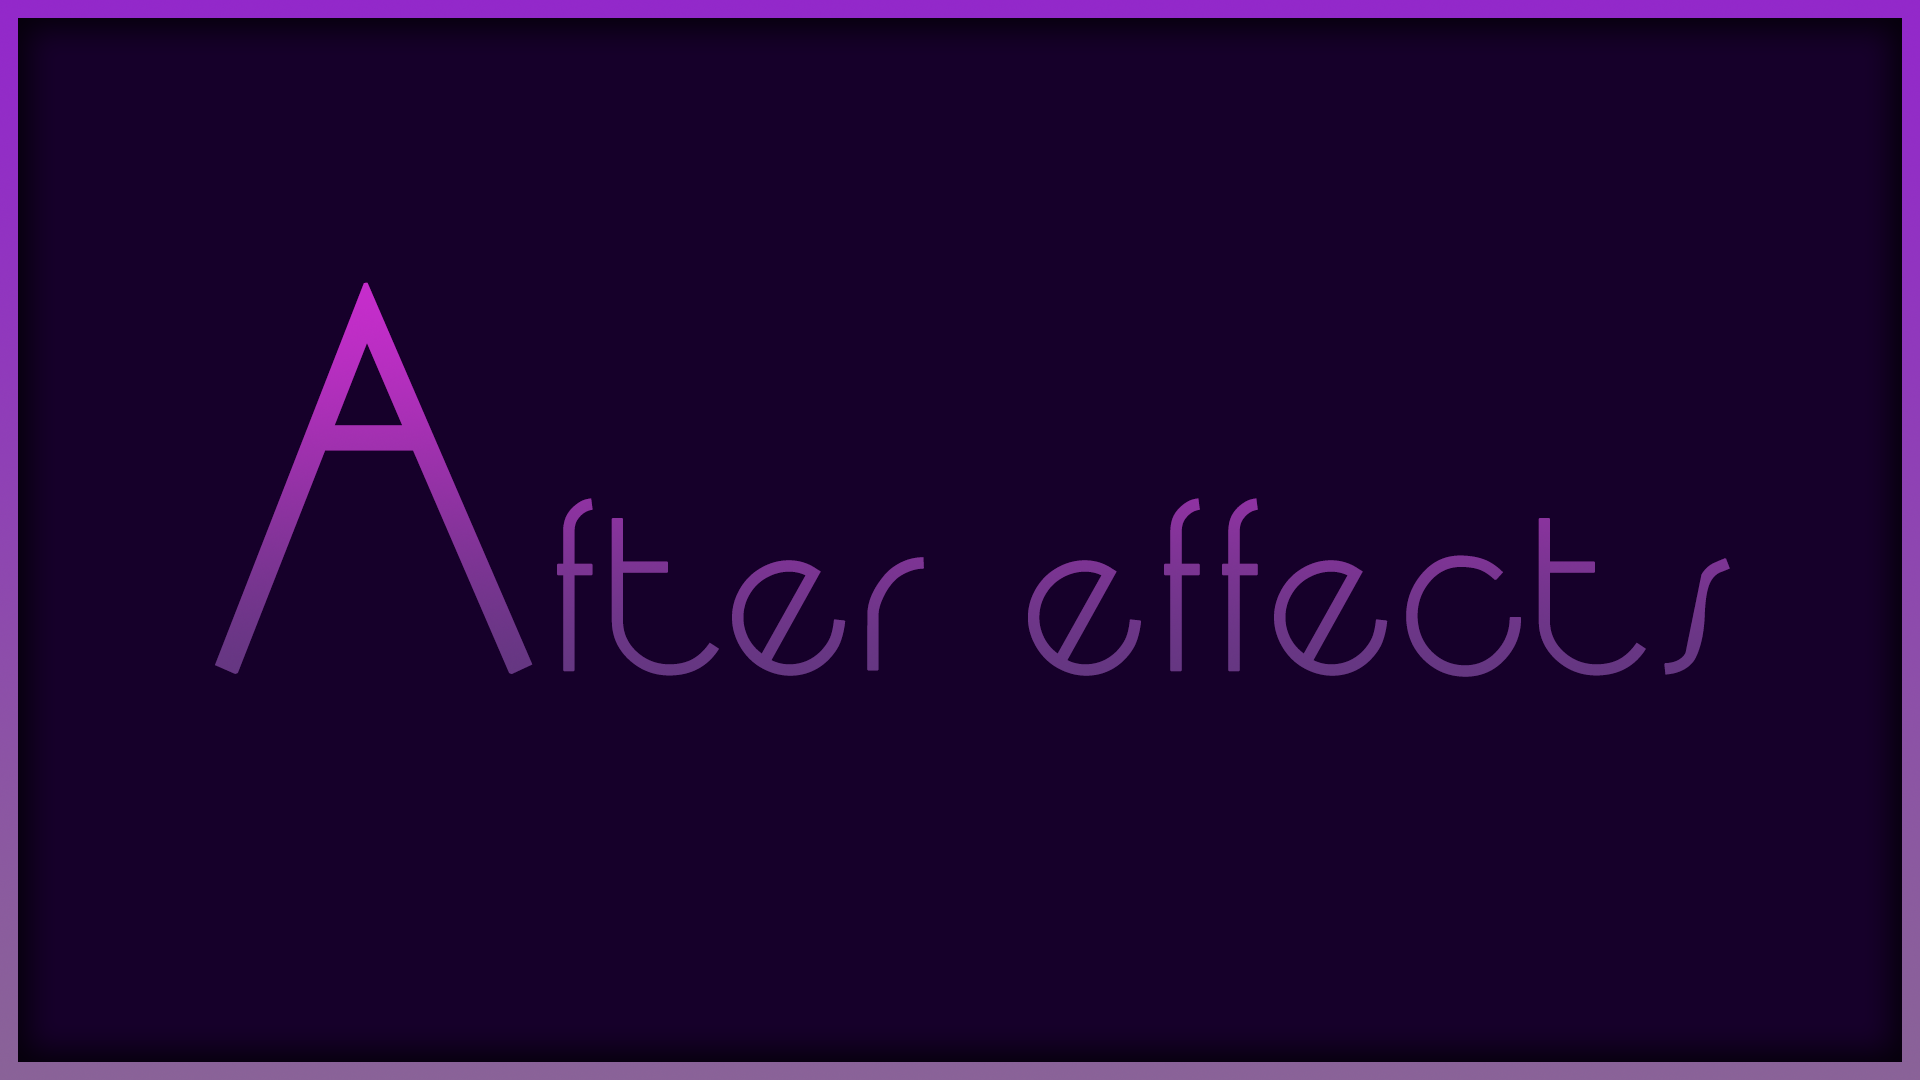 Adobe after effects download - 29248